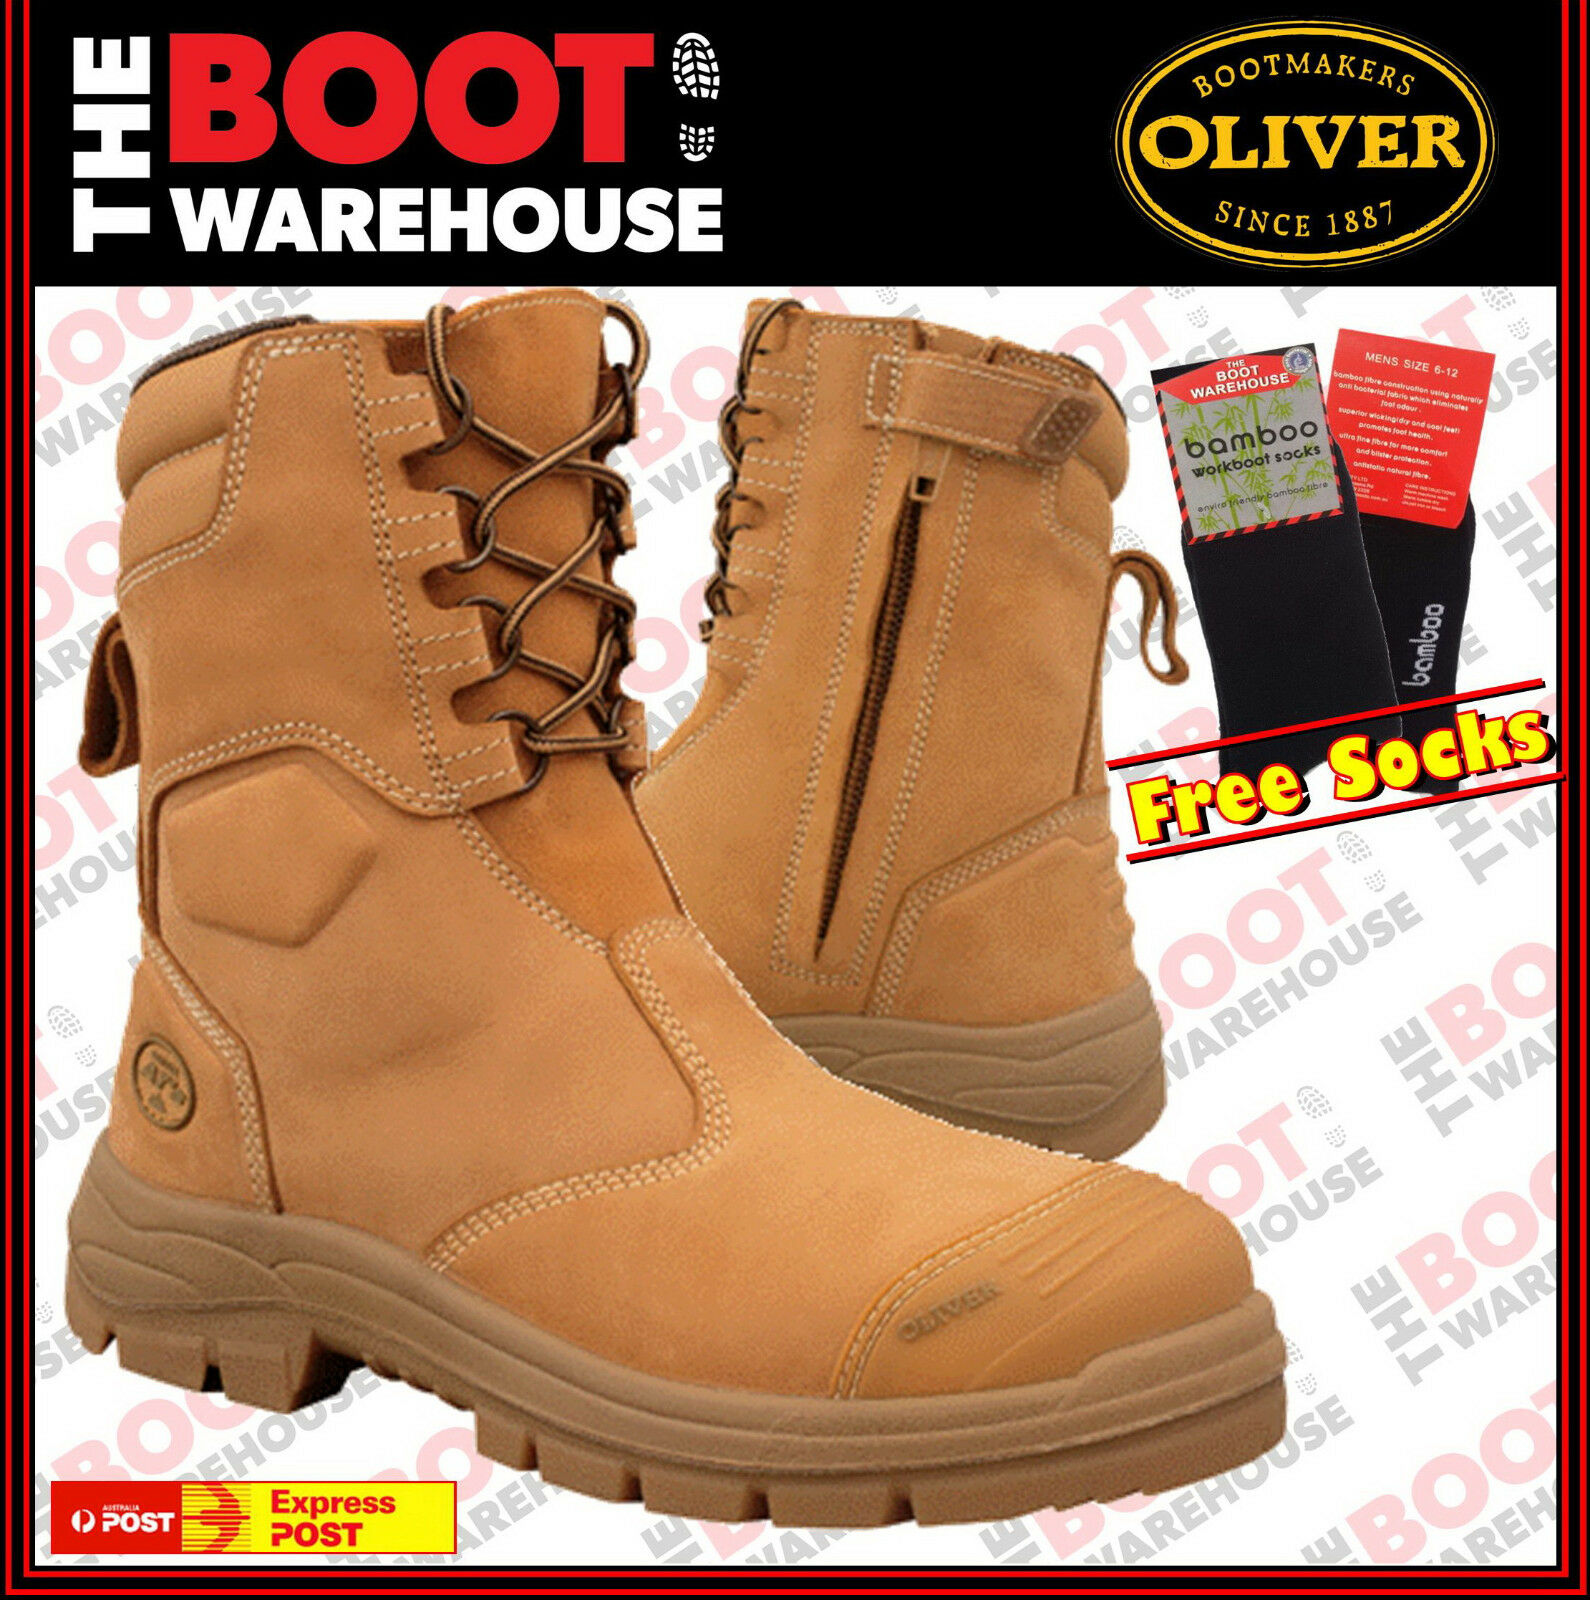 Oliver Work Stiefel 55385, Steel Toe Safety High Leg, Zip Side. UPDATED STYLE